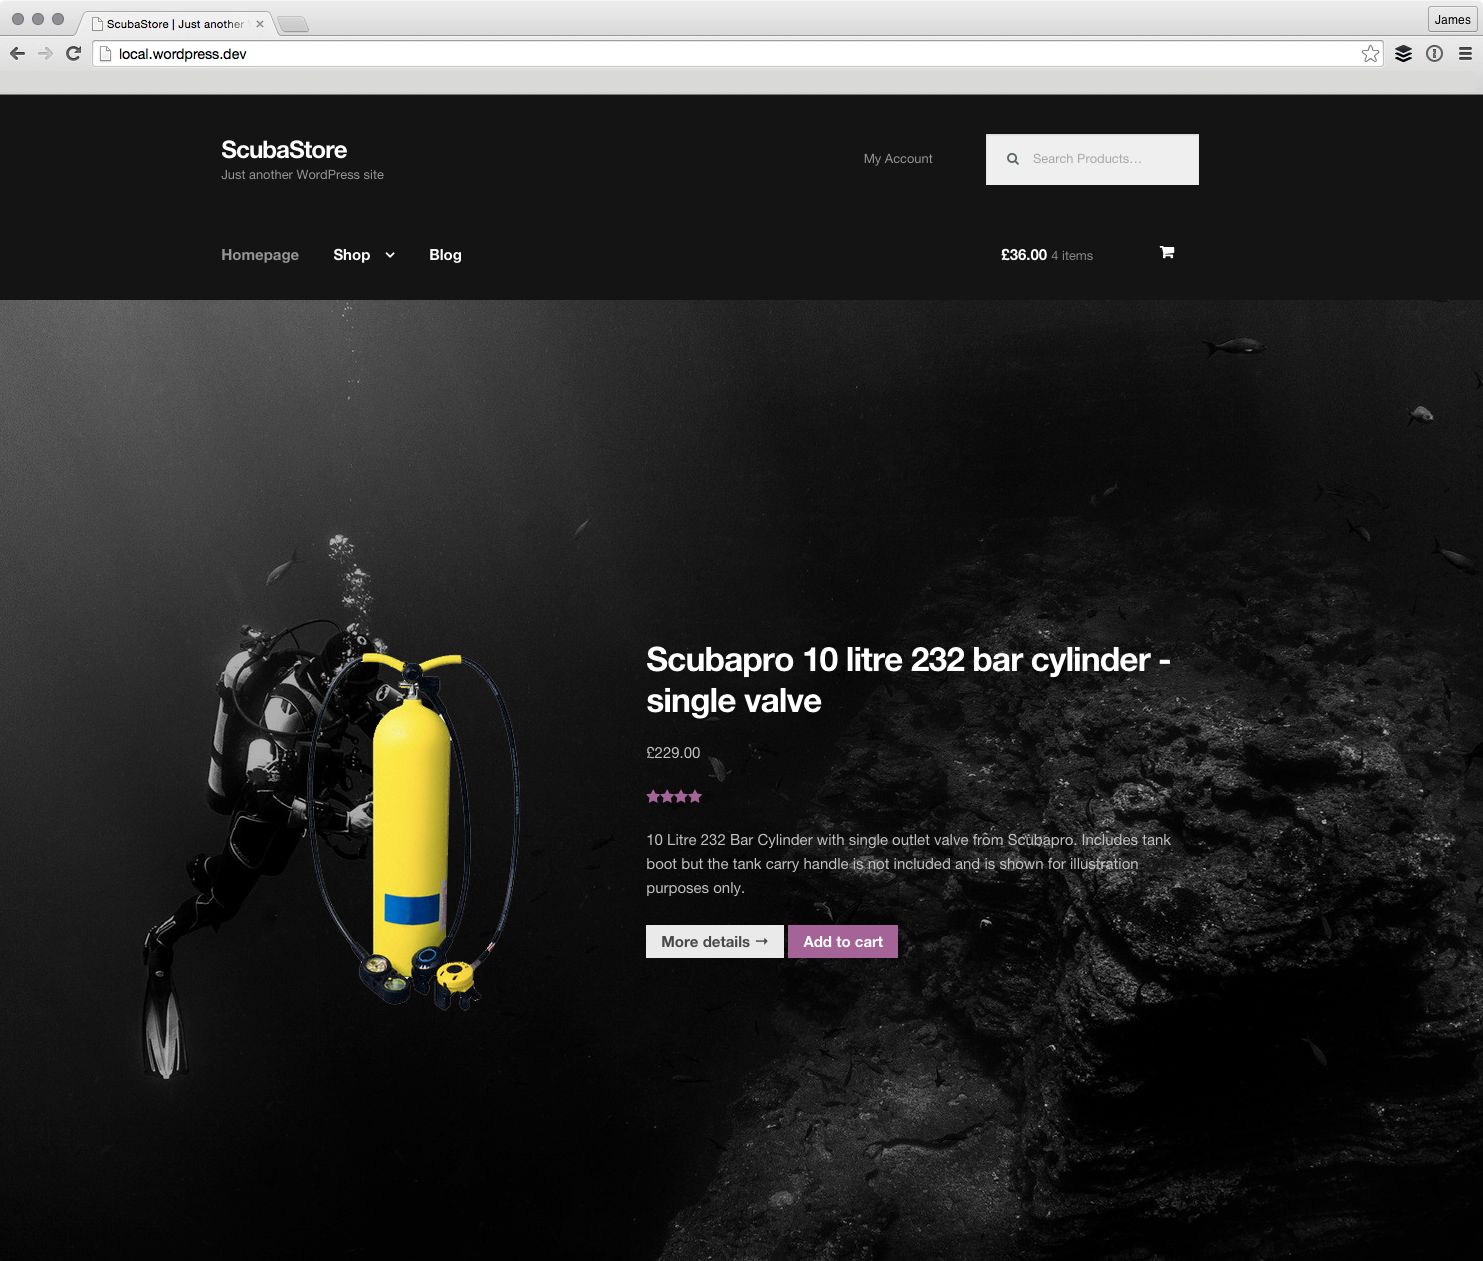 The Product Hero in action on a homepage